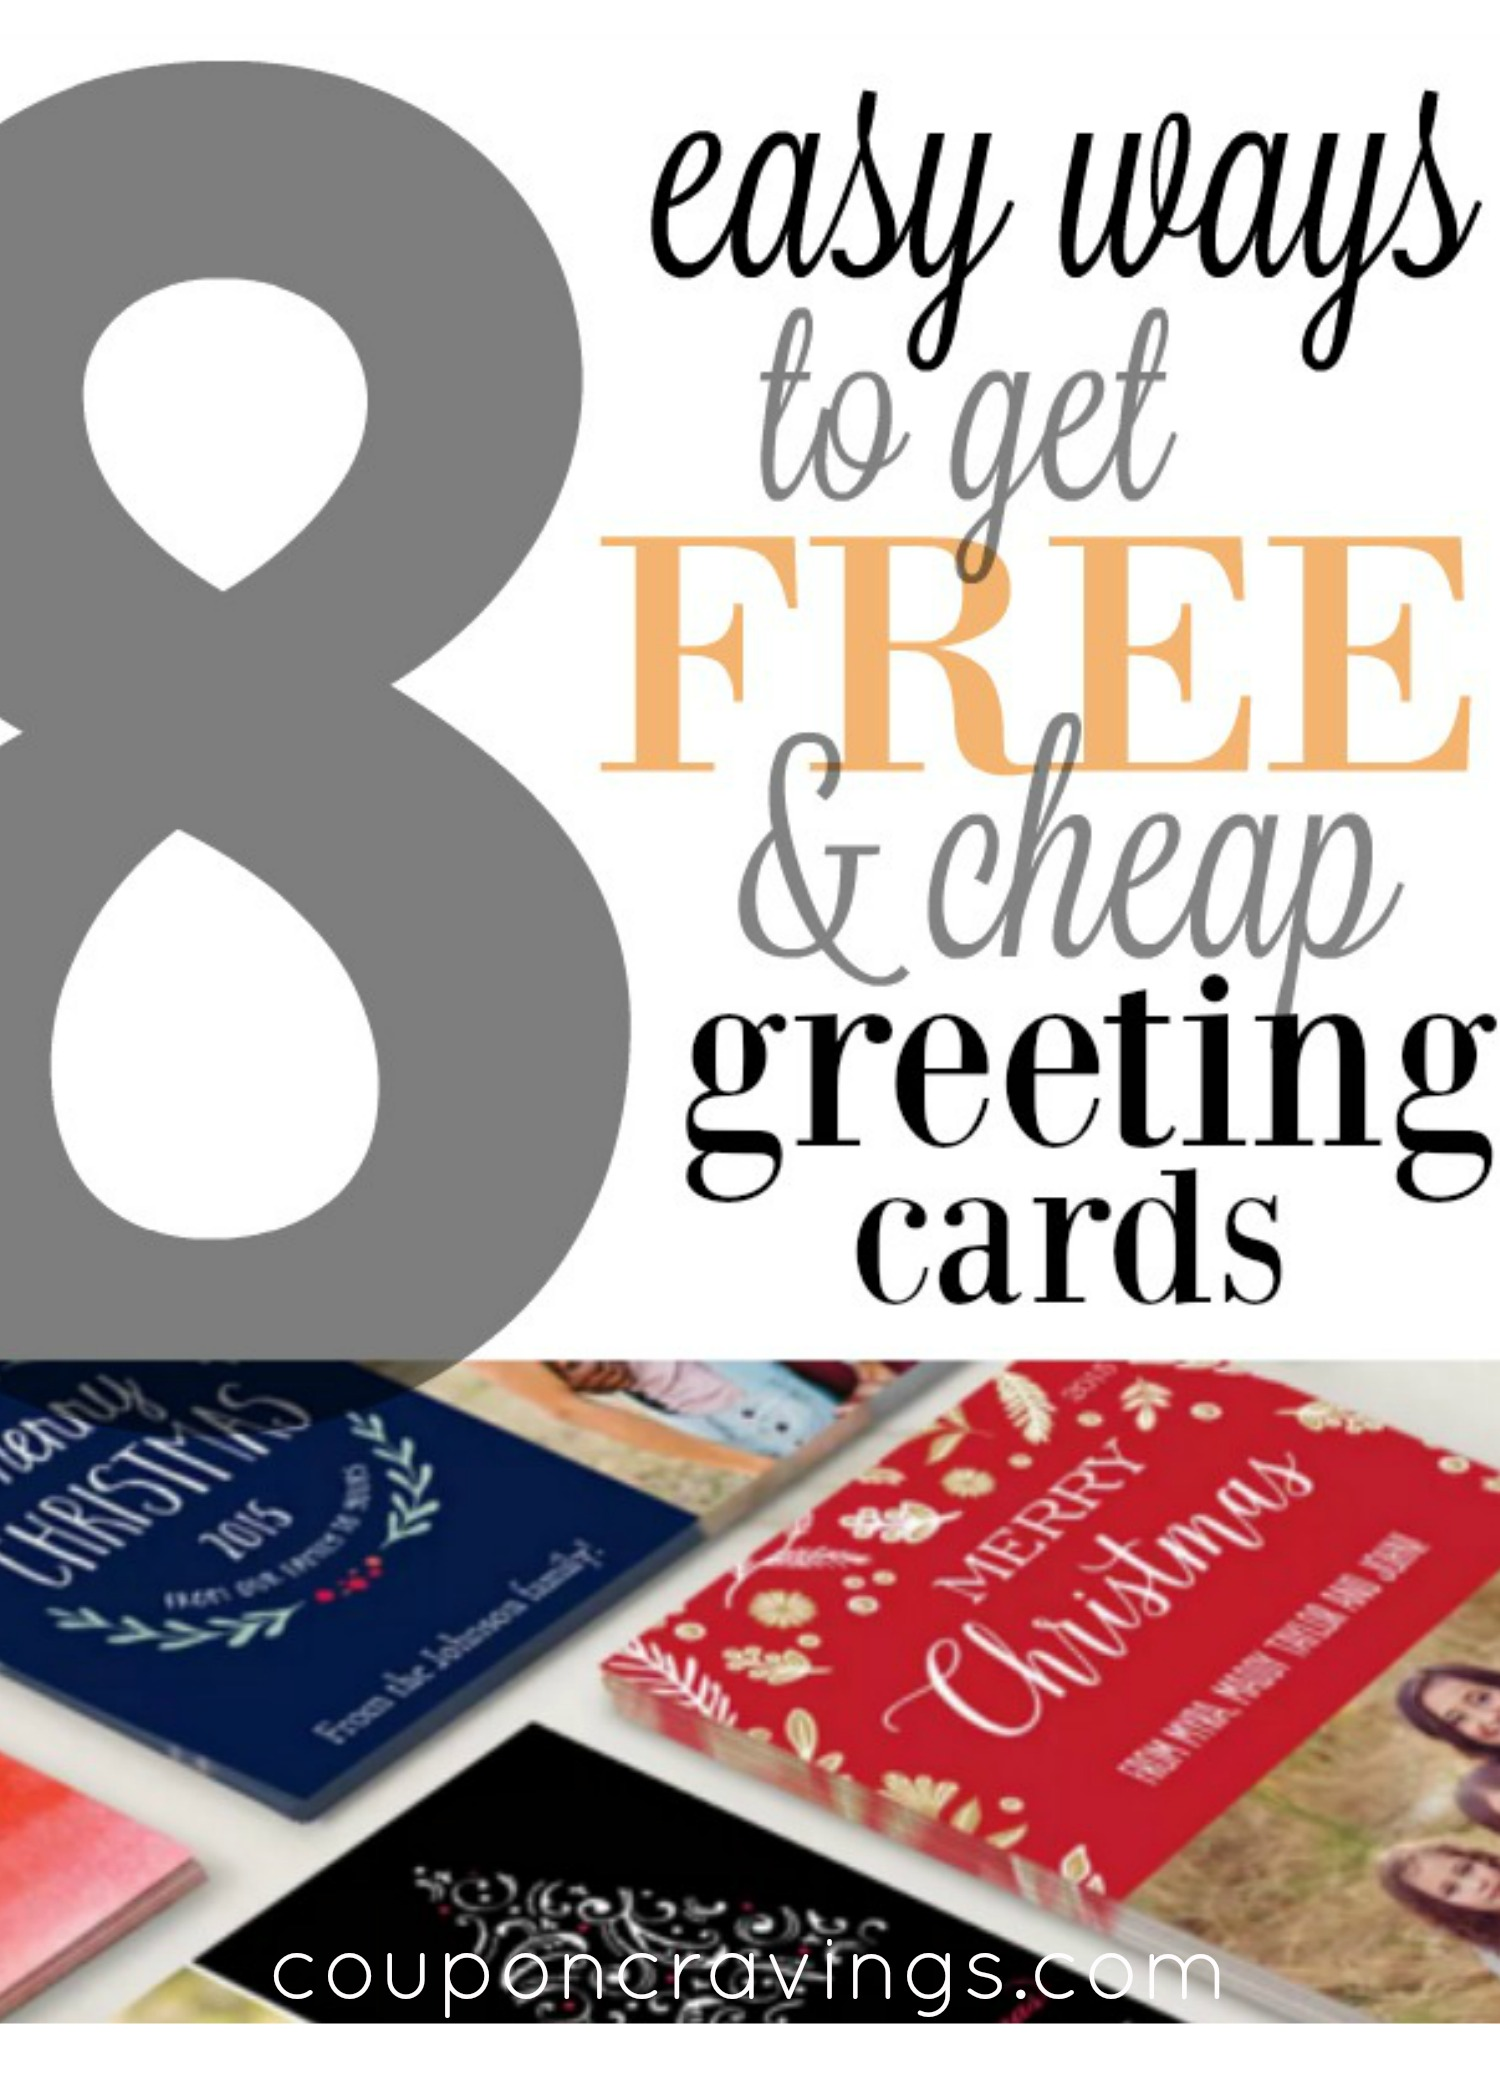 Walgreens photo coupons for christmas cards kroger coupons dallas tx walgreens home facebook m4hsunfo